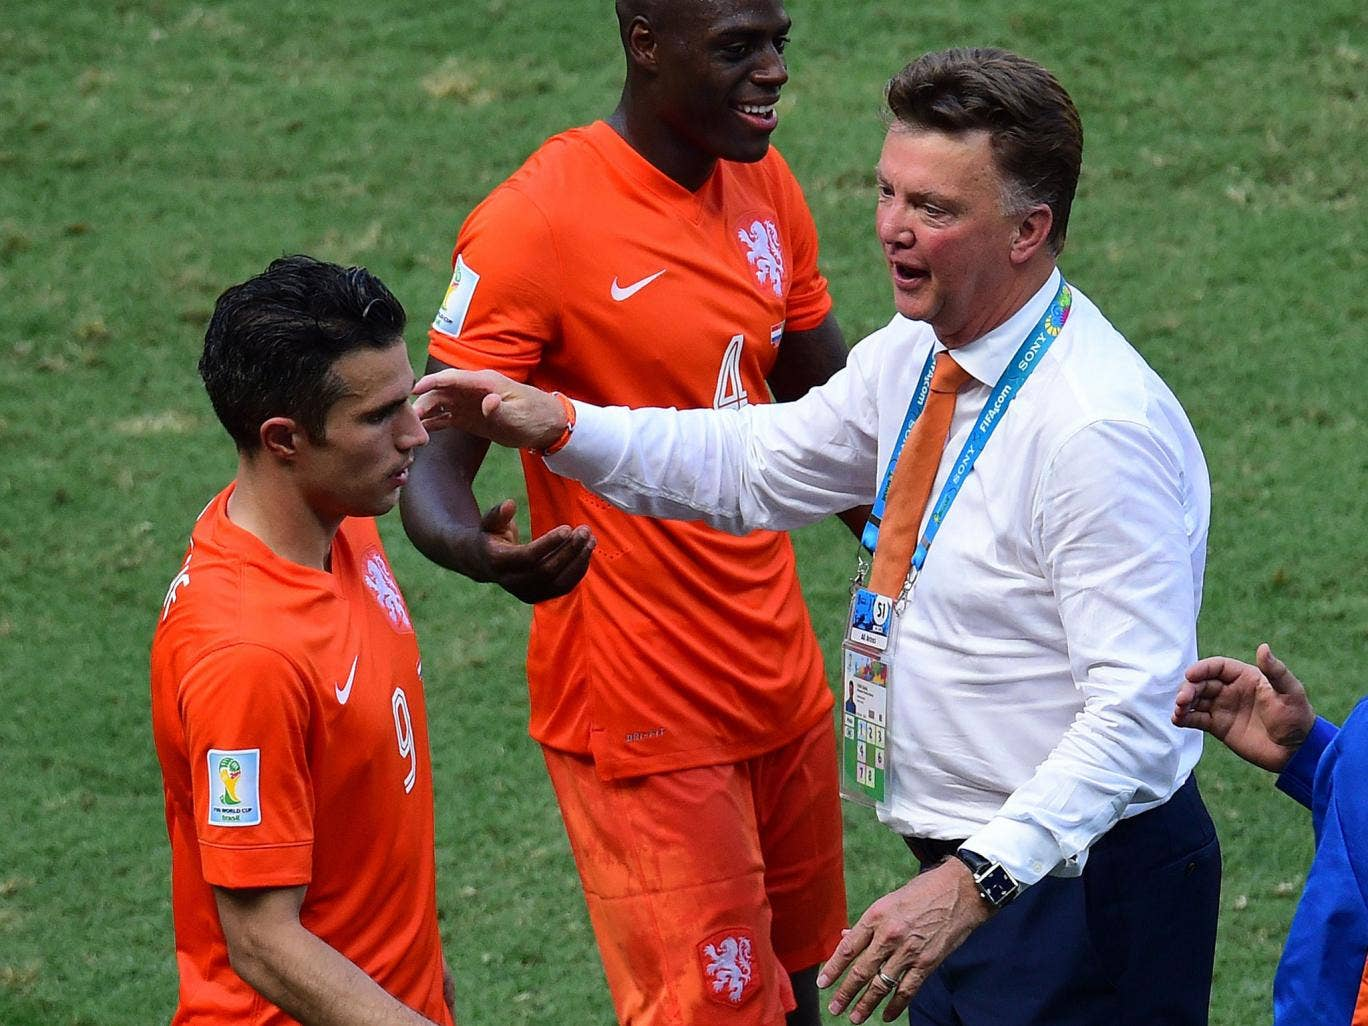 Louis van Gaal will weat his lucky bracelet (on his right wrist) all the way to the World Cup final